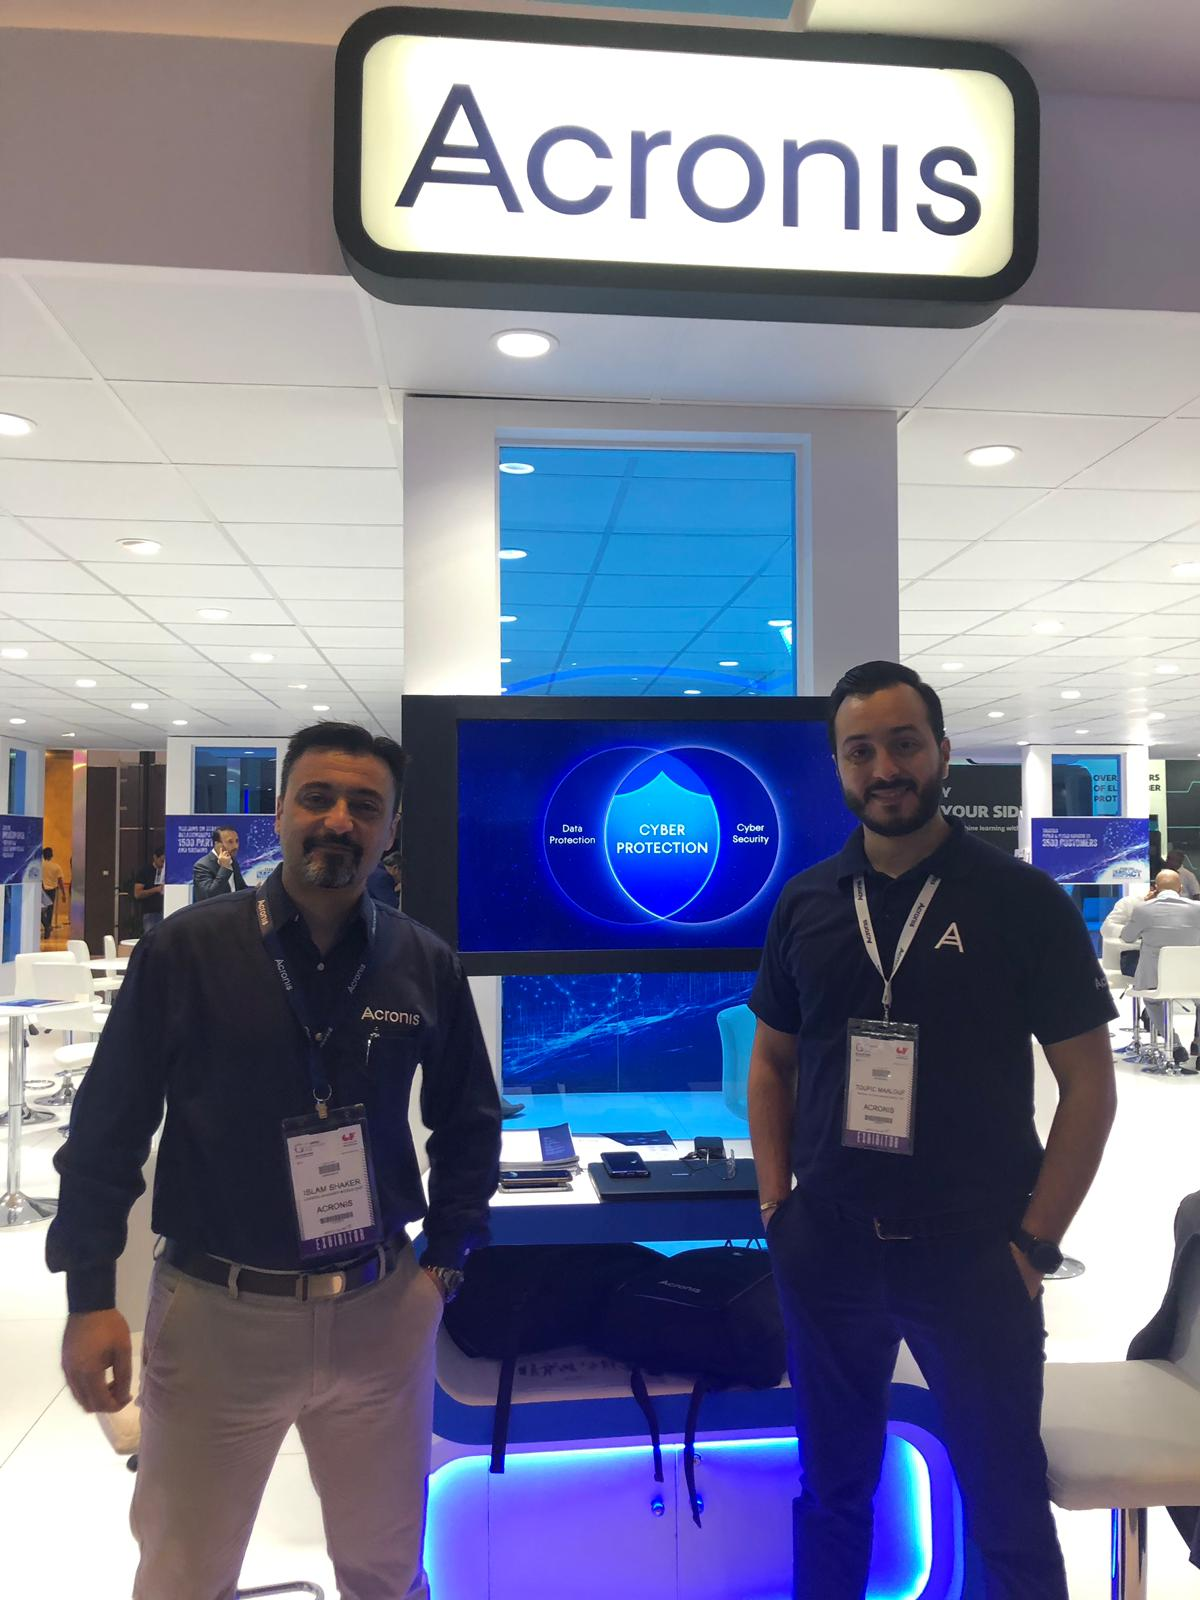 Islam Shaker and Toufic Maalouf at Acronis Stand at GITEX 2019